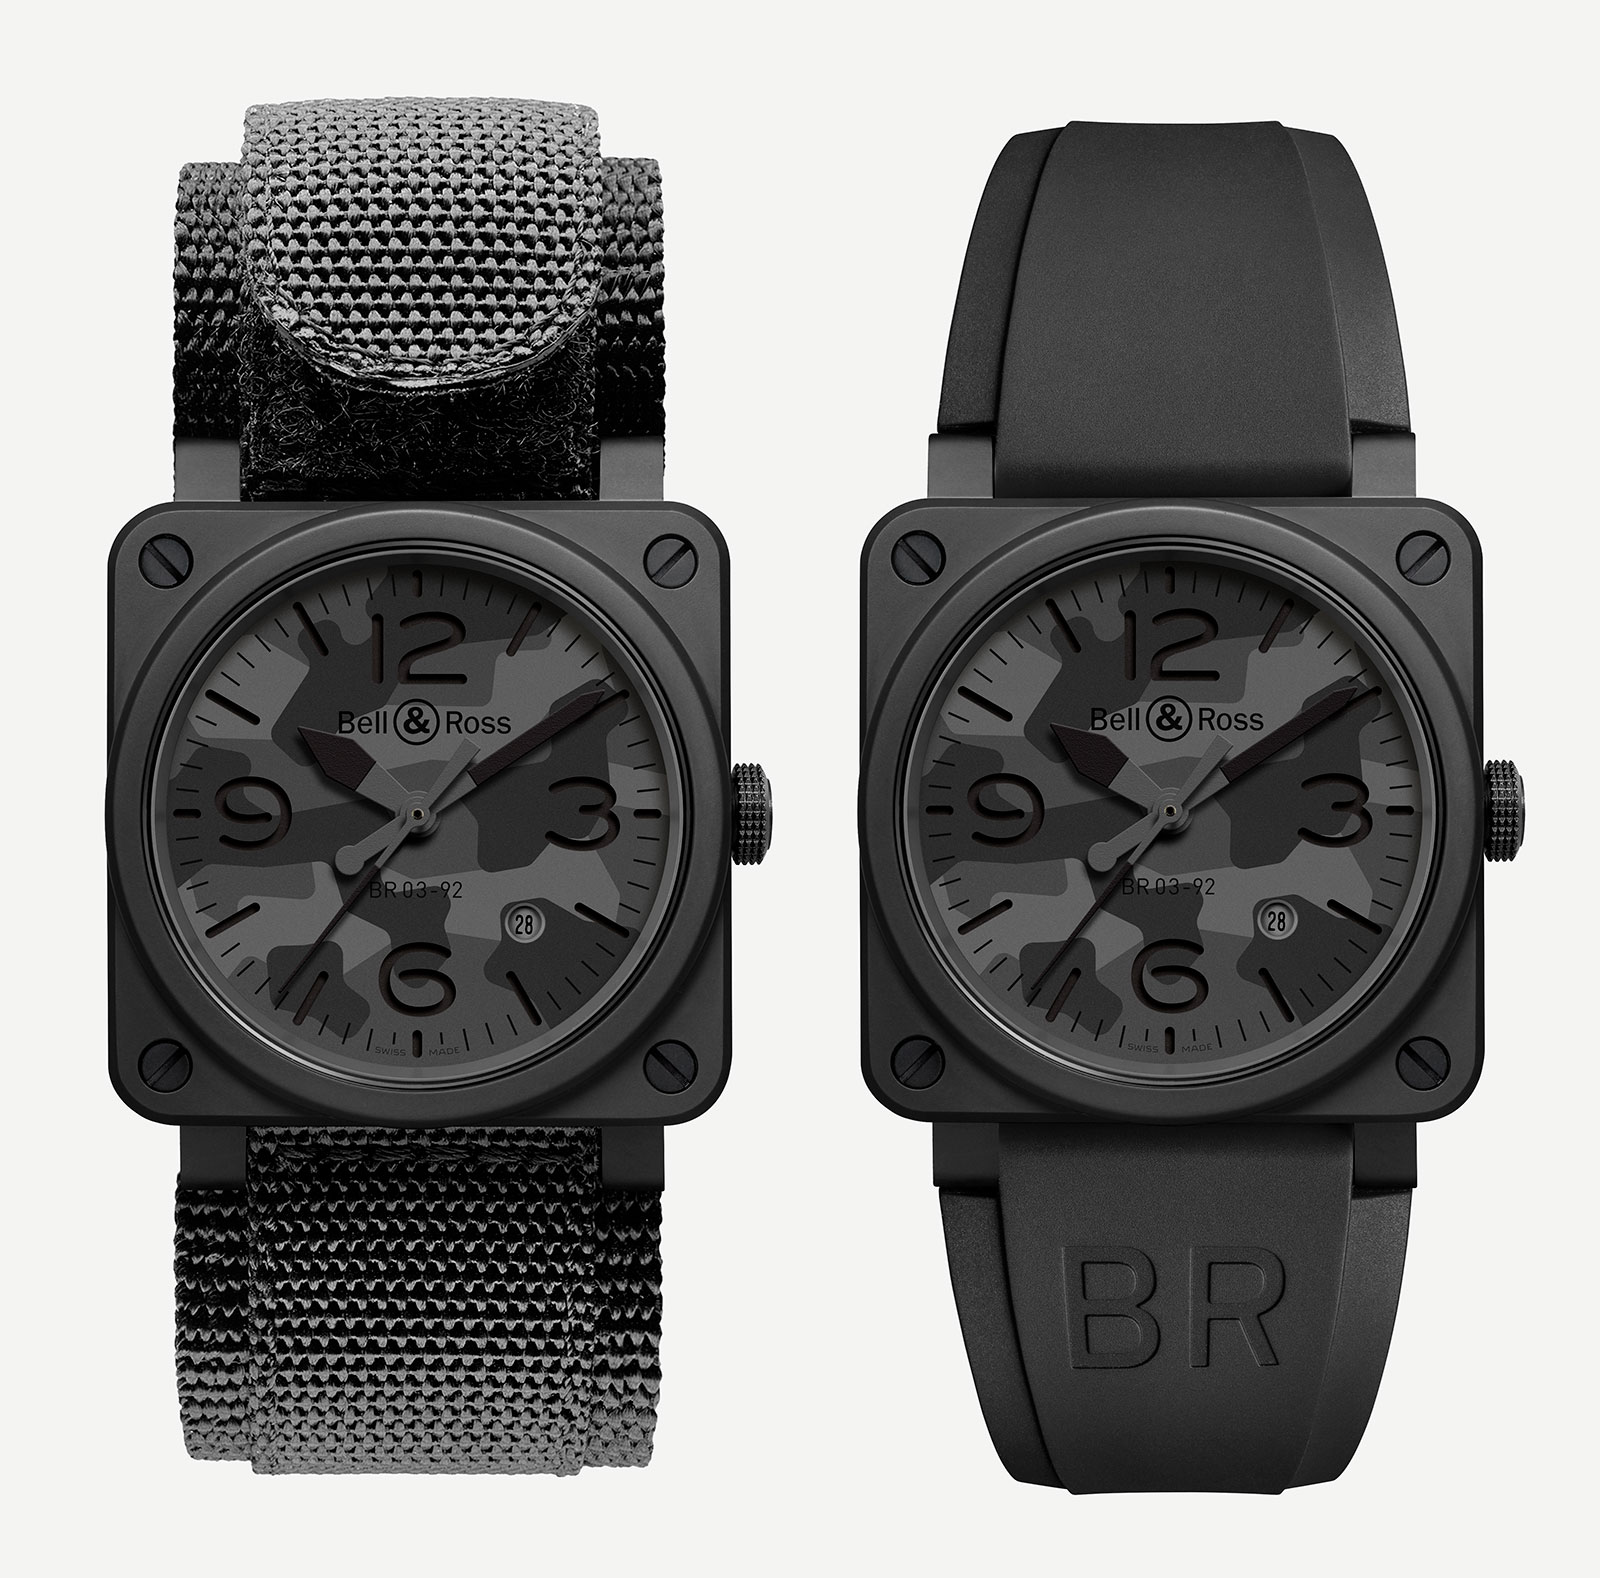 Introducing the Bell & Ross BR 03-92 Black Camo